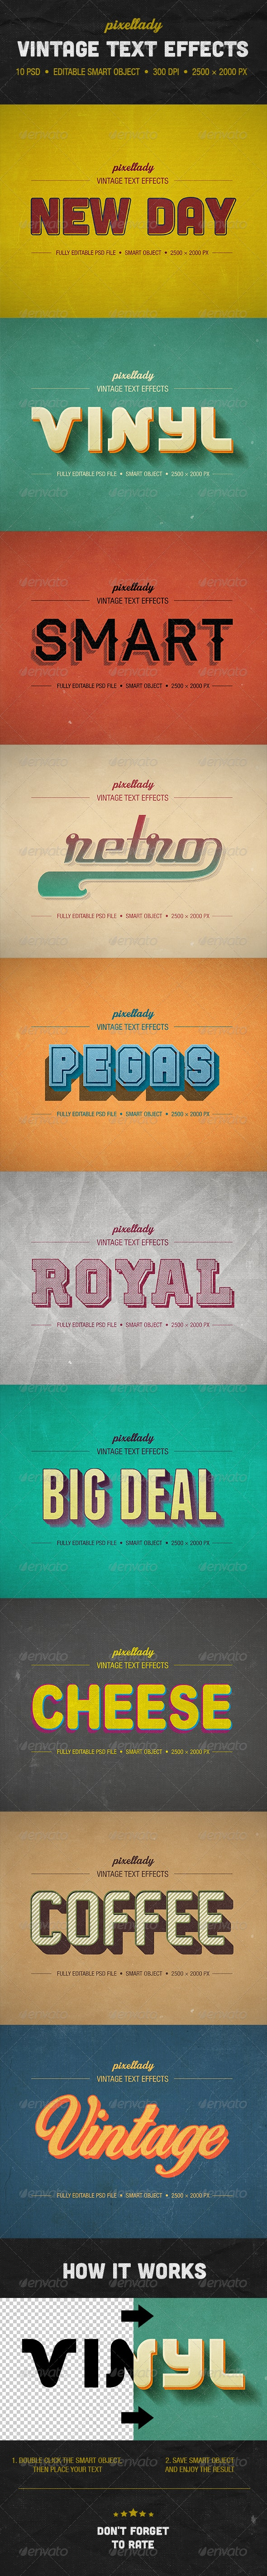 Vintage Text Effects - Text Effects Actions